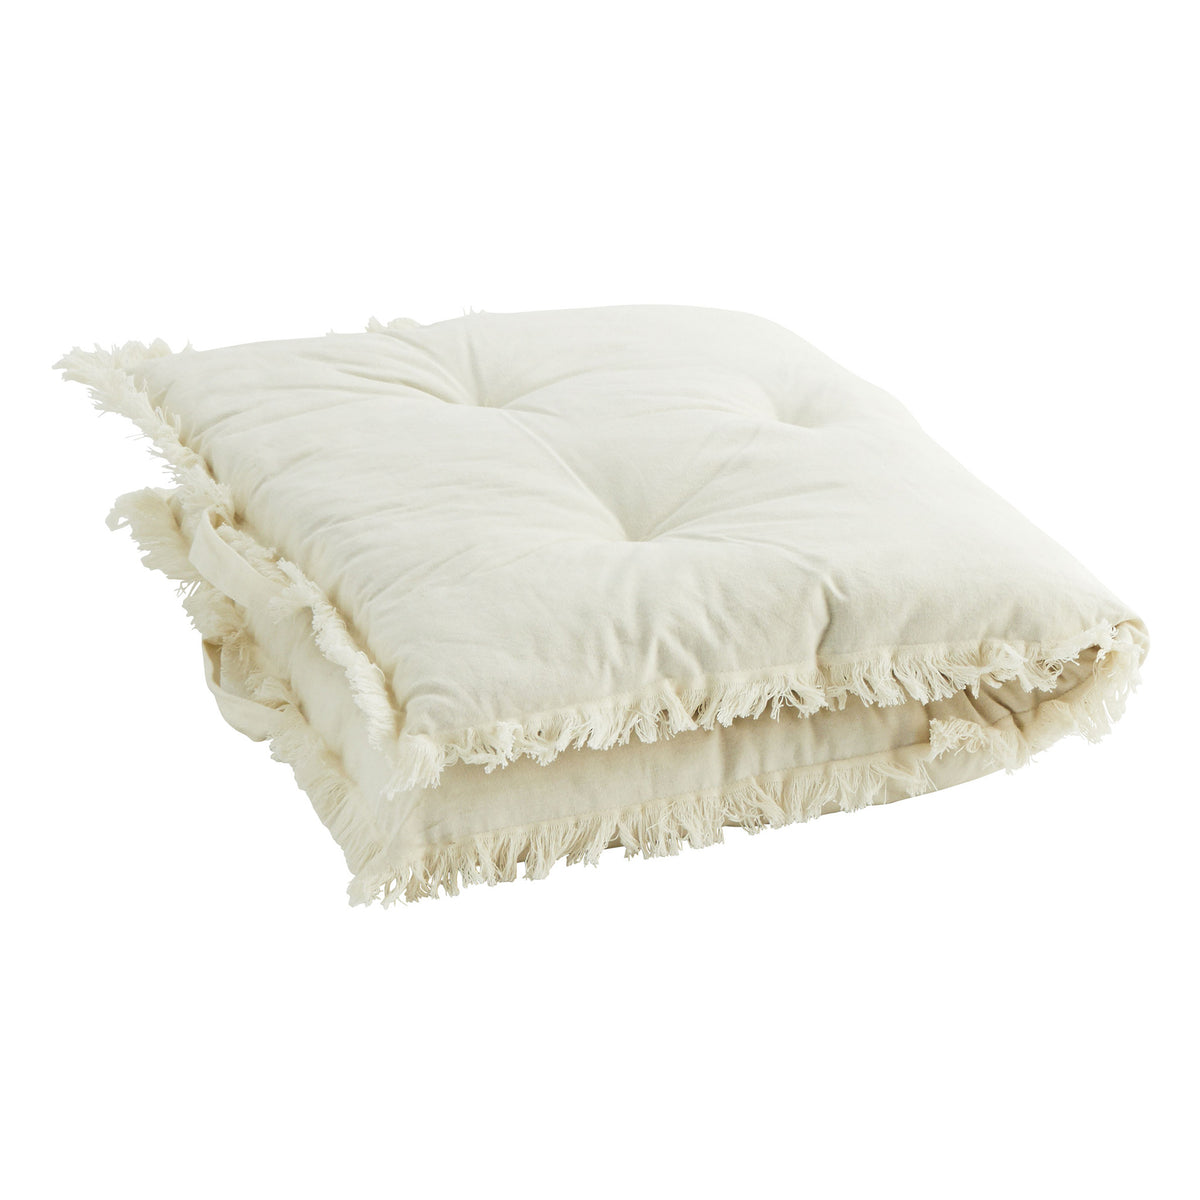 Madam Stoltz Cotton mattress w/ fringes in white - Scandi Minimal